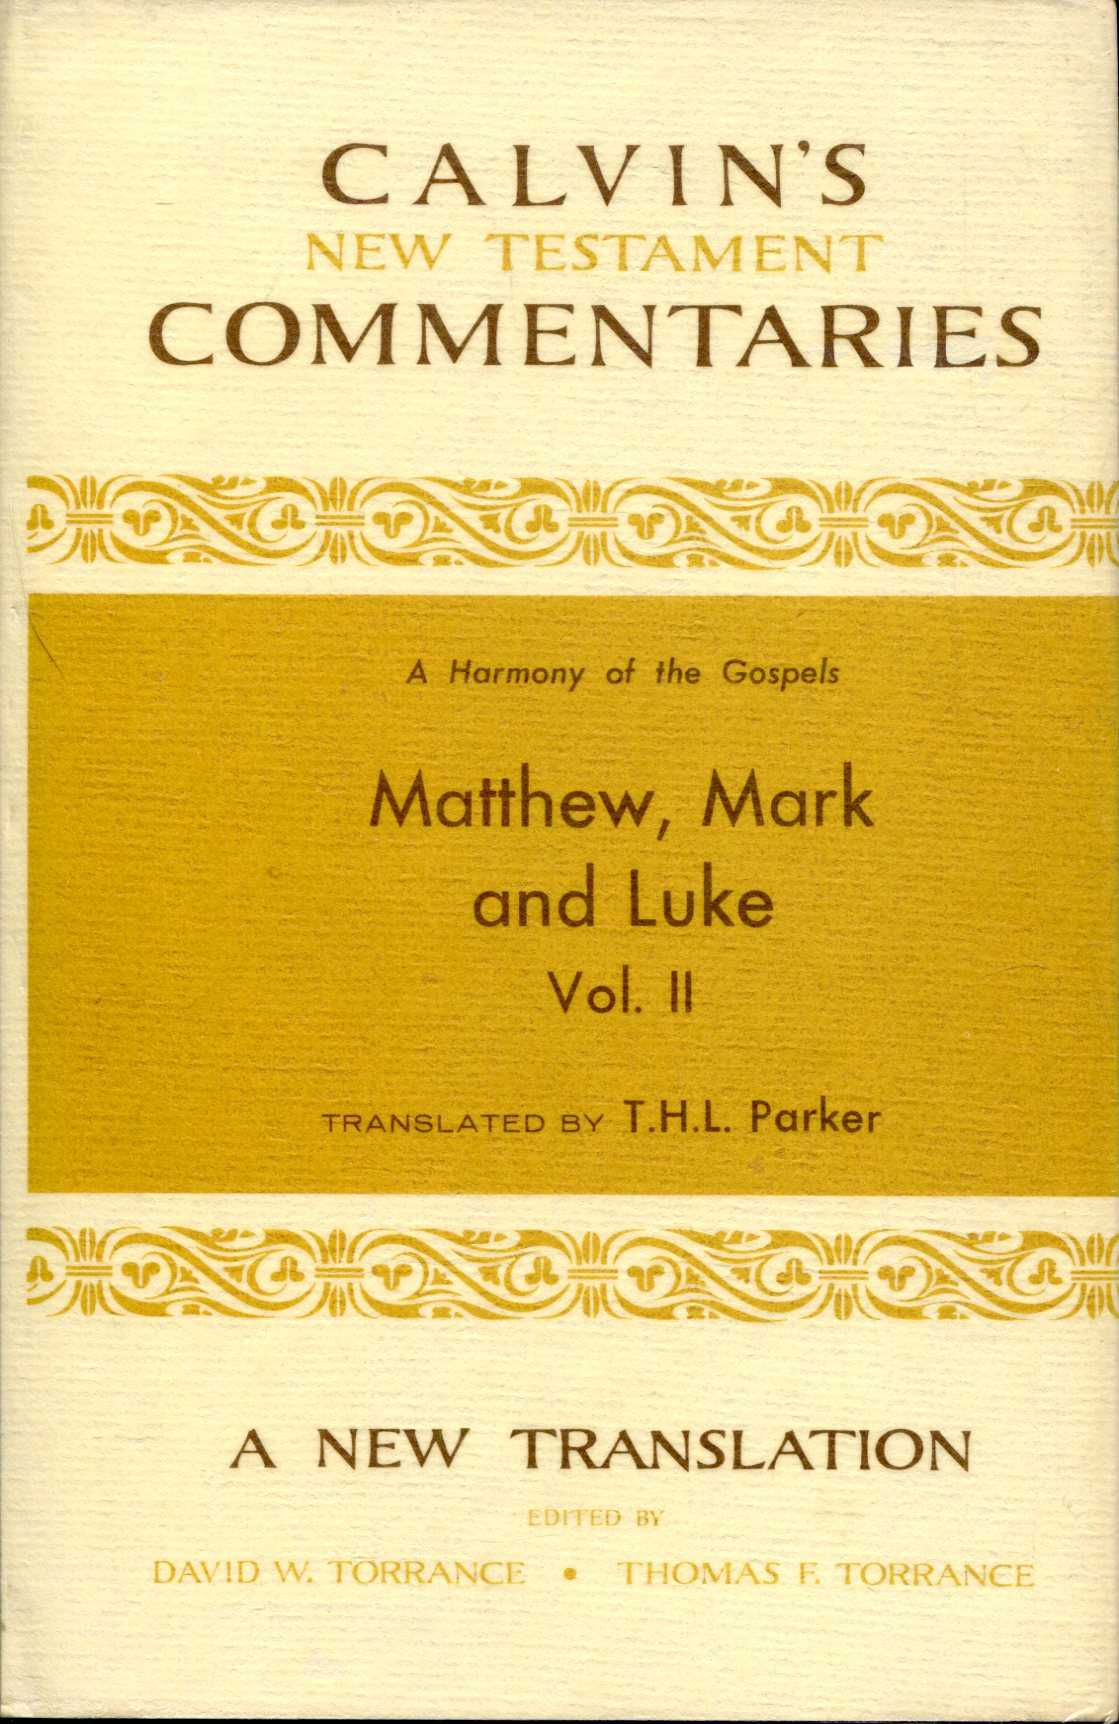 Image for A Harmony of the Gospels:  Matthew, Mark, and Luke volume II (Calvin's New Testament Commentaries)